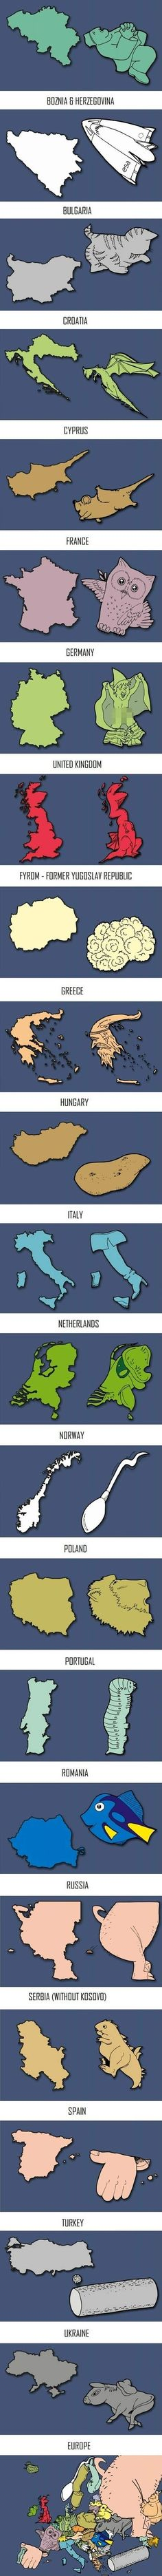 Europe In The Eyes Of An Artist